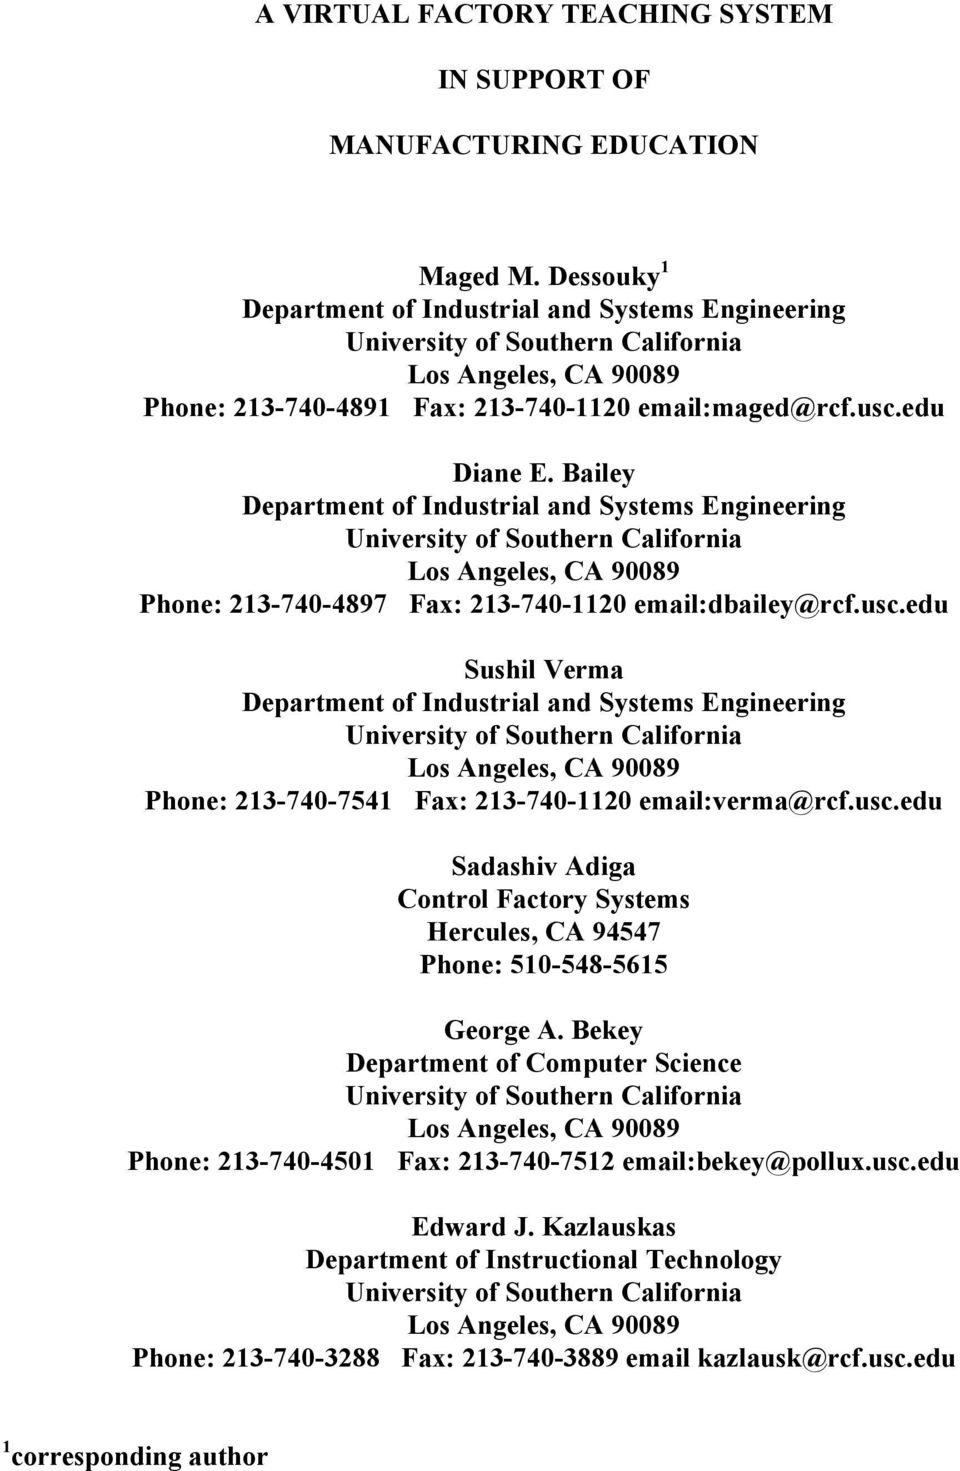 Bailey Department of Industrial and Systems Engineering University of Southern California Los Angeles, CA 90089 Phone: 213-740-4897 Fax: 213-740-1120 email:dbailey@rcf.usc.